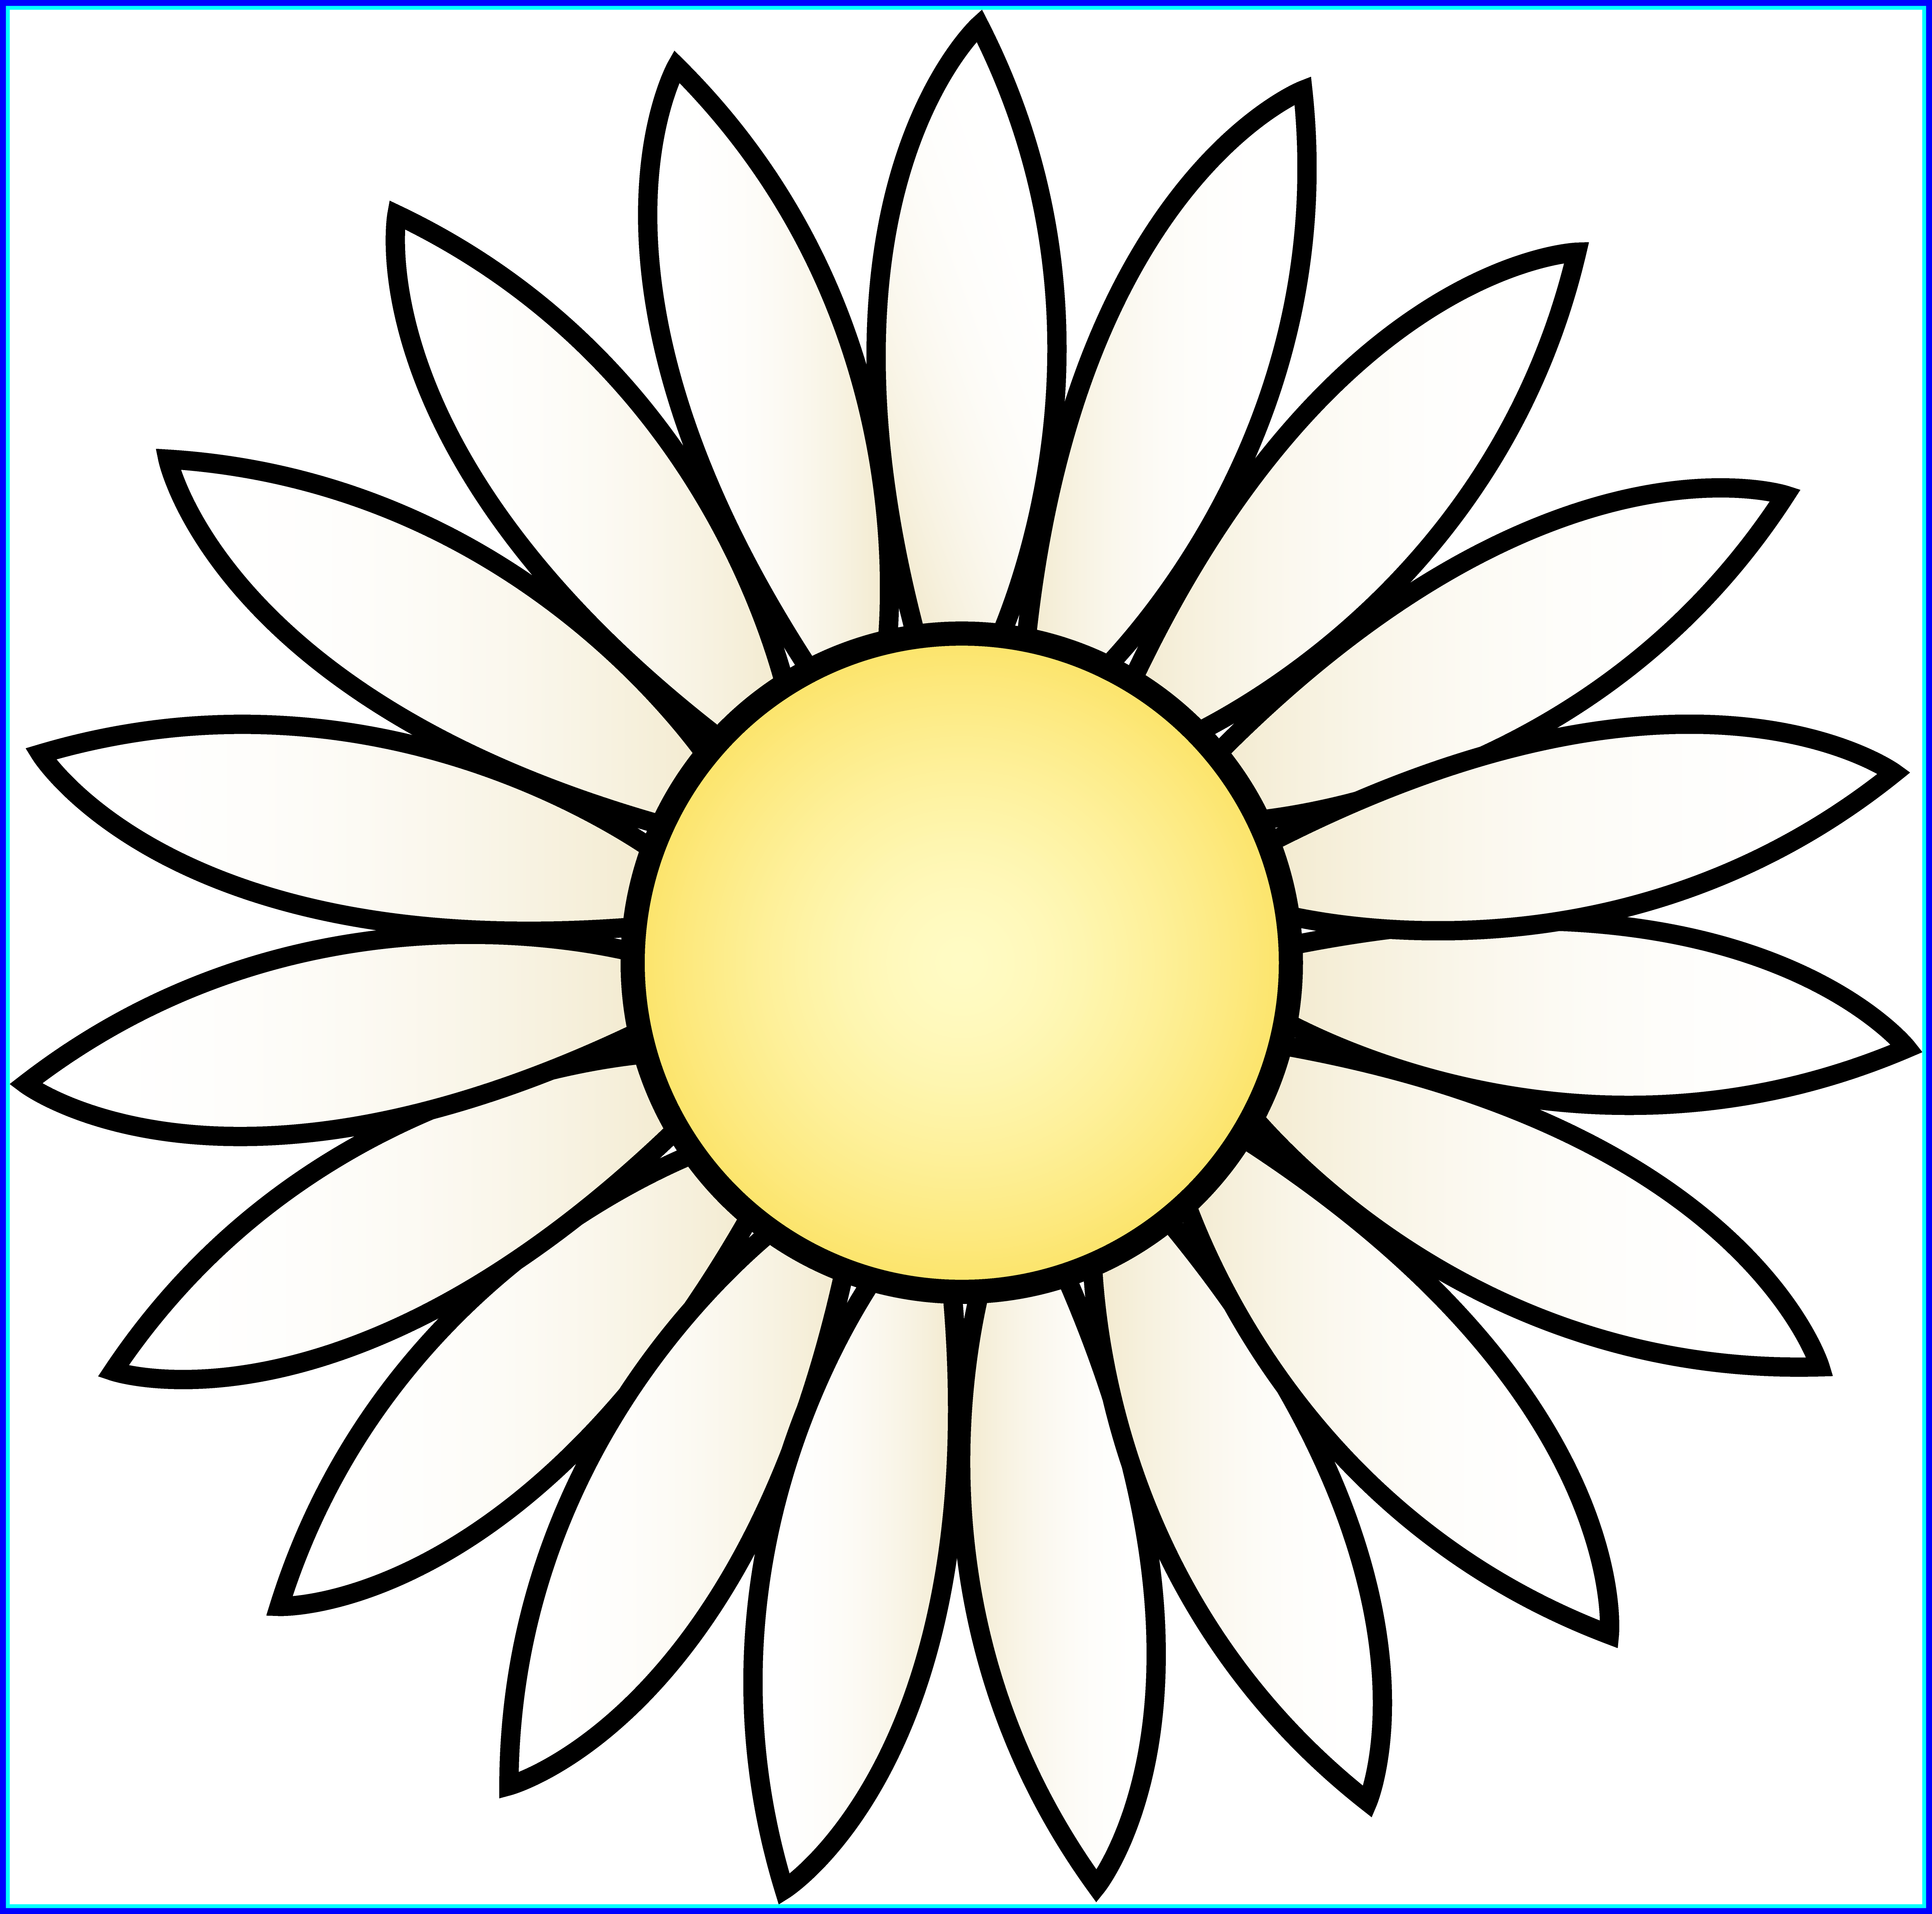 Daisy flower black and white clipart library Stunning White Daisy Flower Clip Art Depolama Picture For Site Com ... library